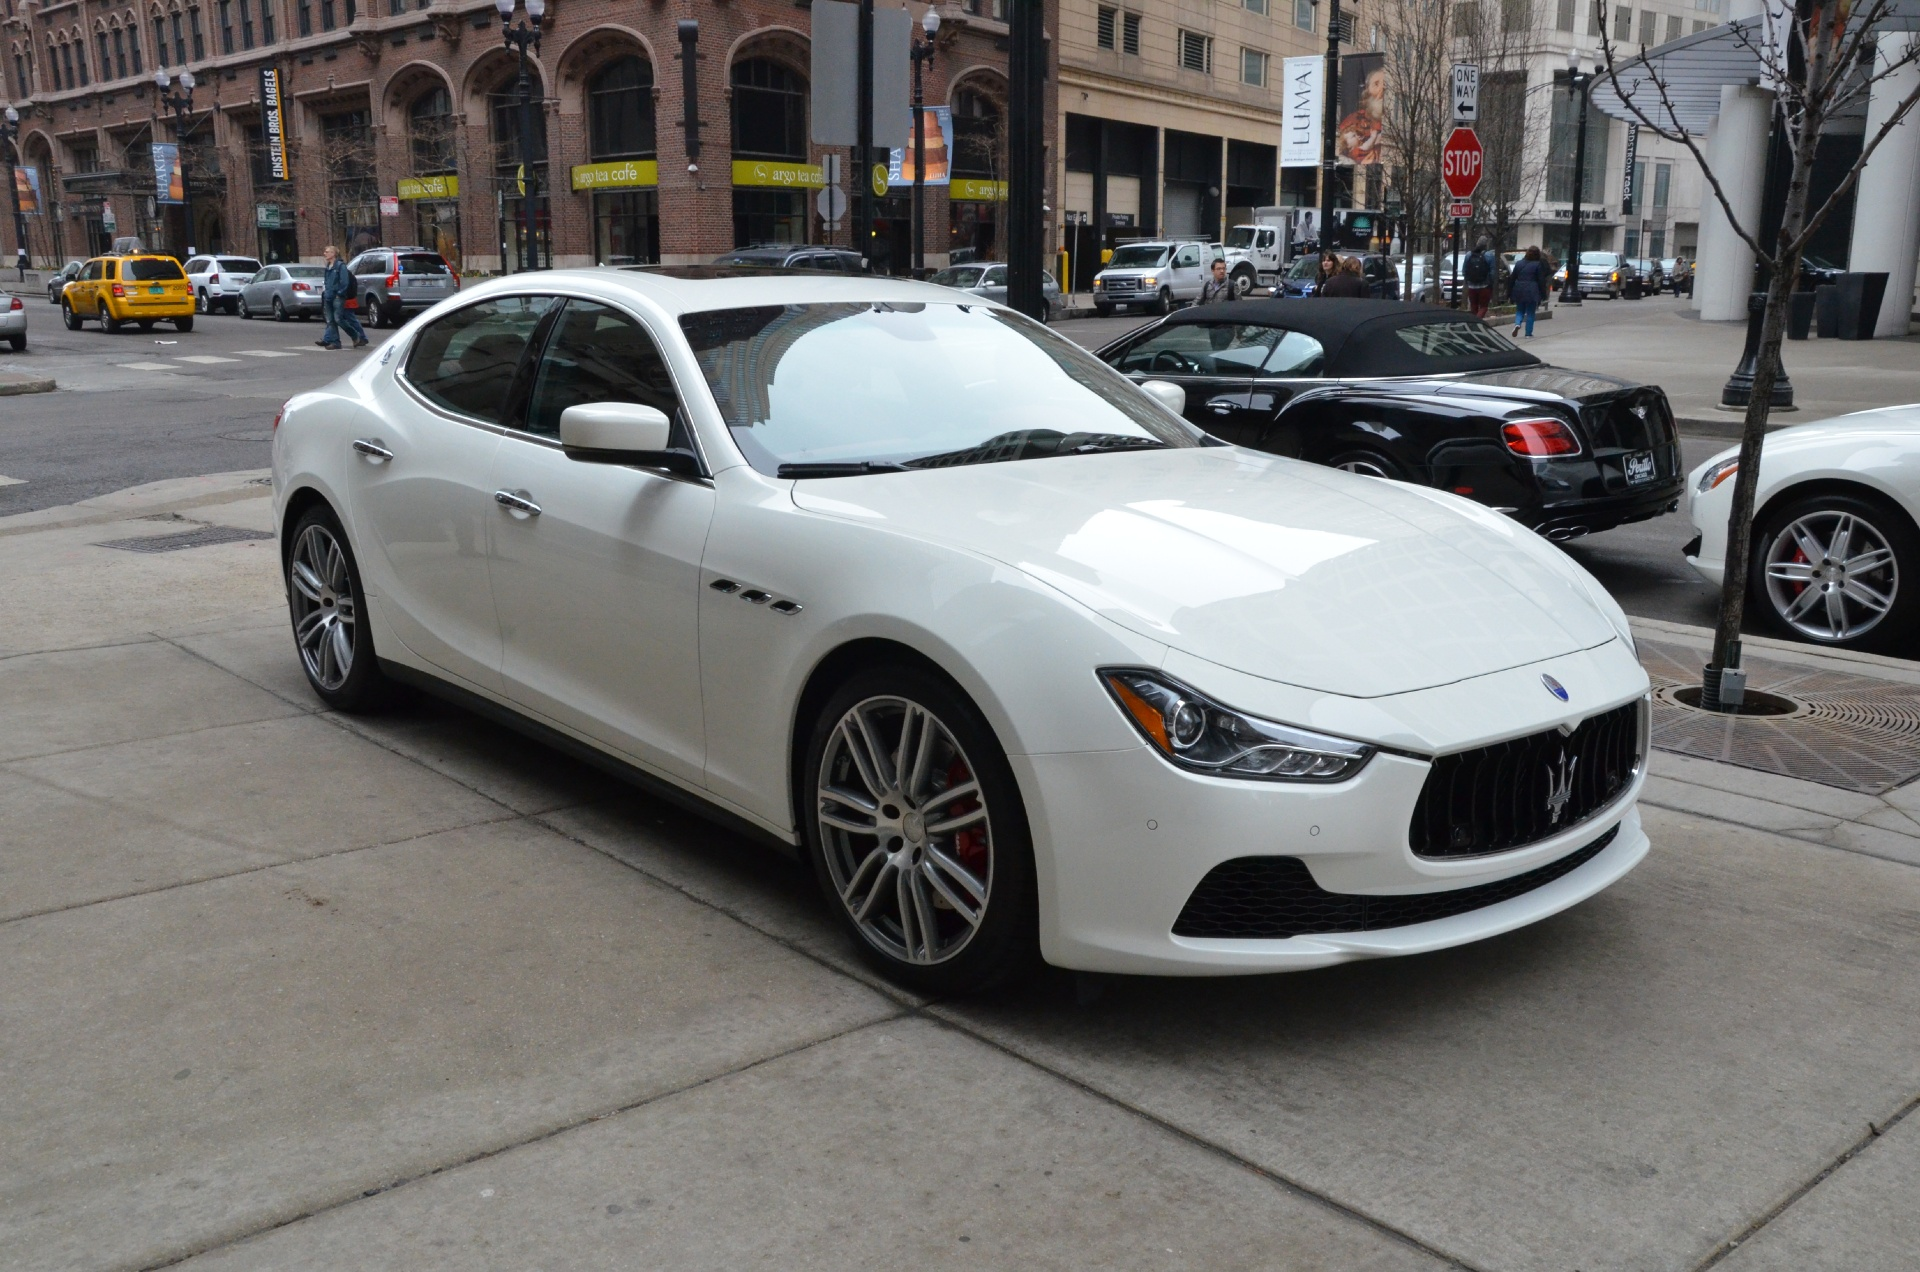 2015 maserati ghibli sq4 s q4 stock m432 s for sale near. Black Bedroom Furniture Sets. Home Design Ideas